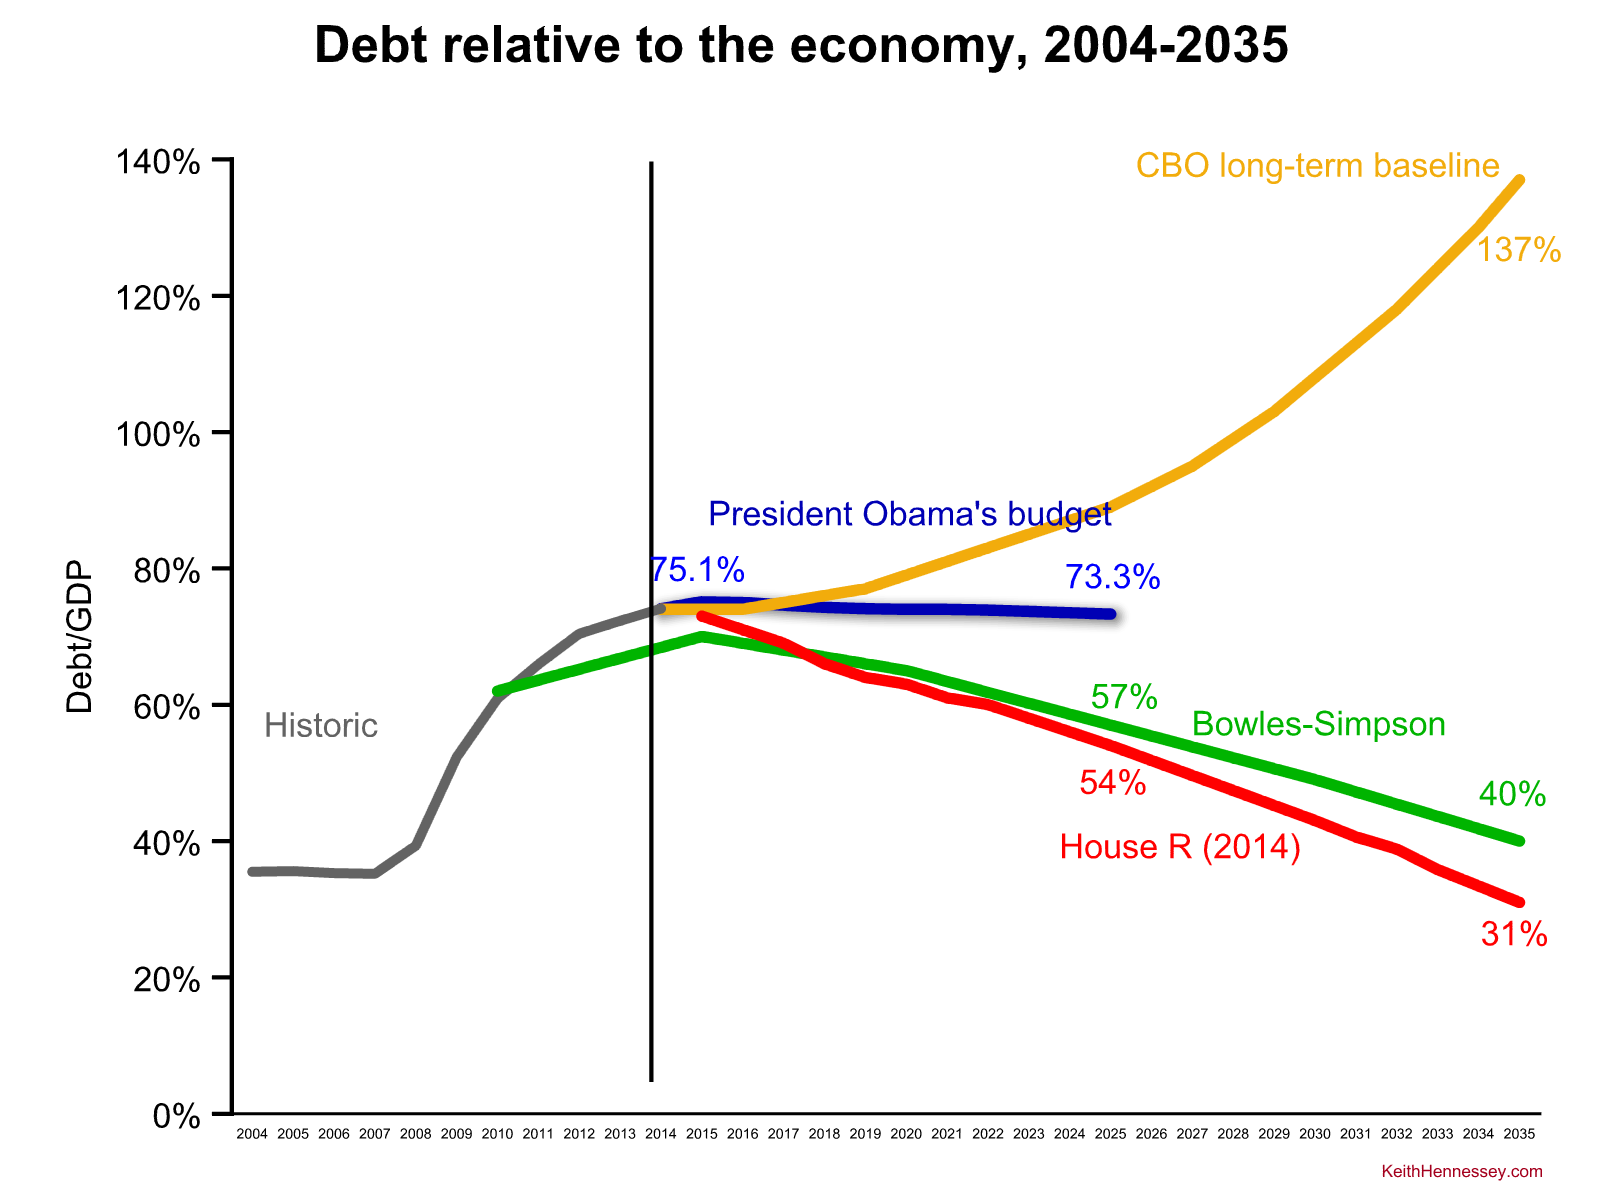 obama-fy16-debt zoom out compare bs house